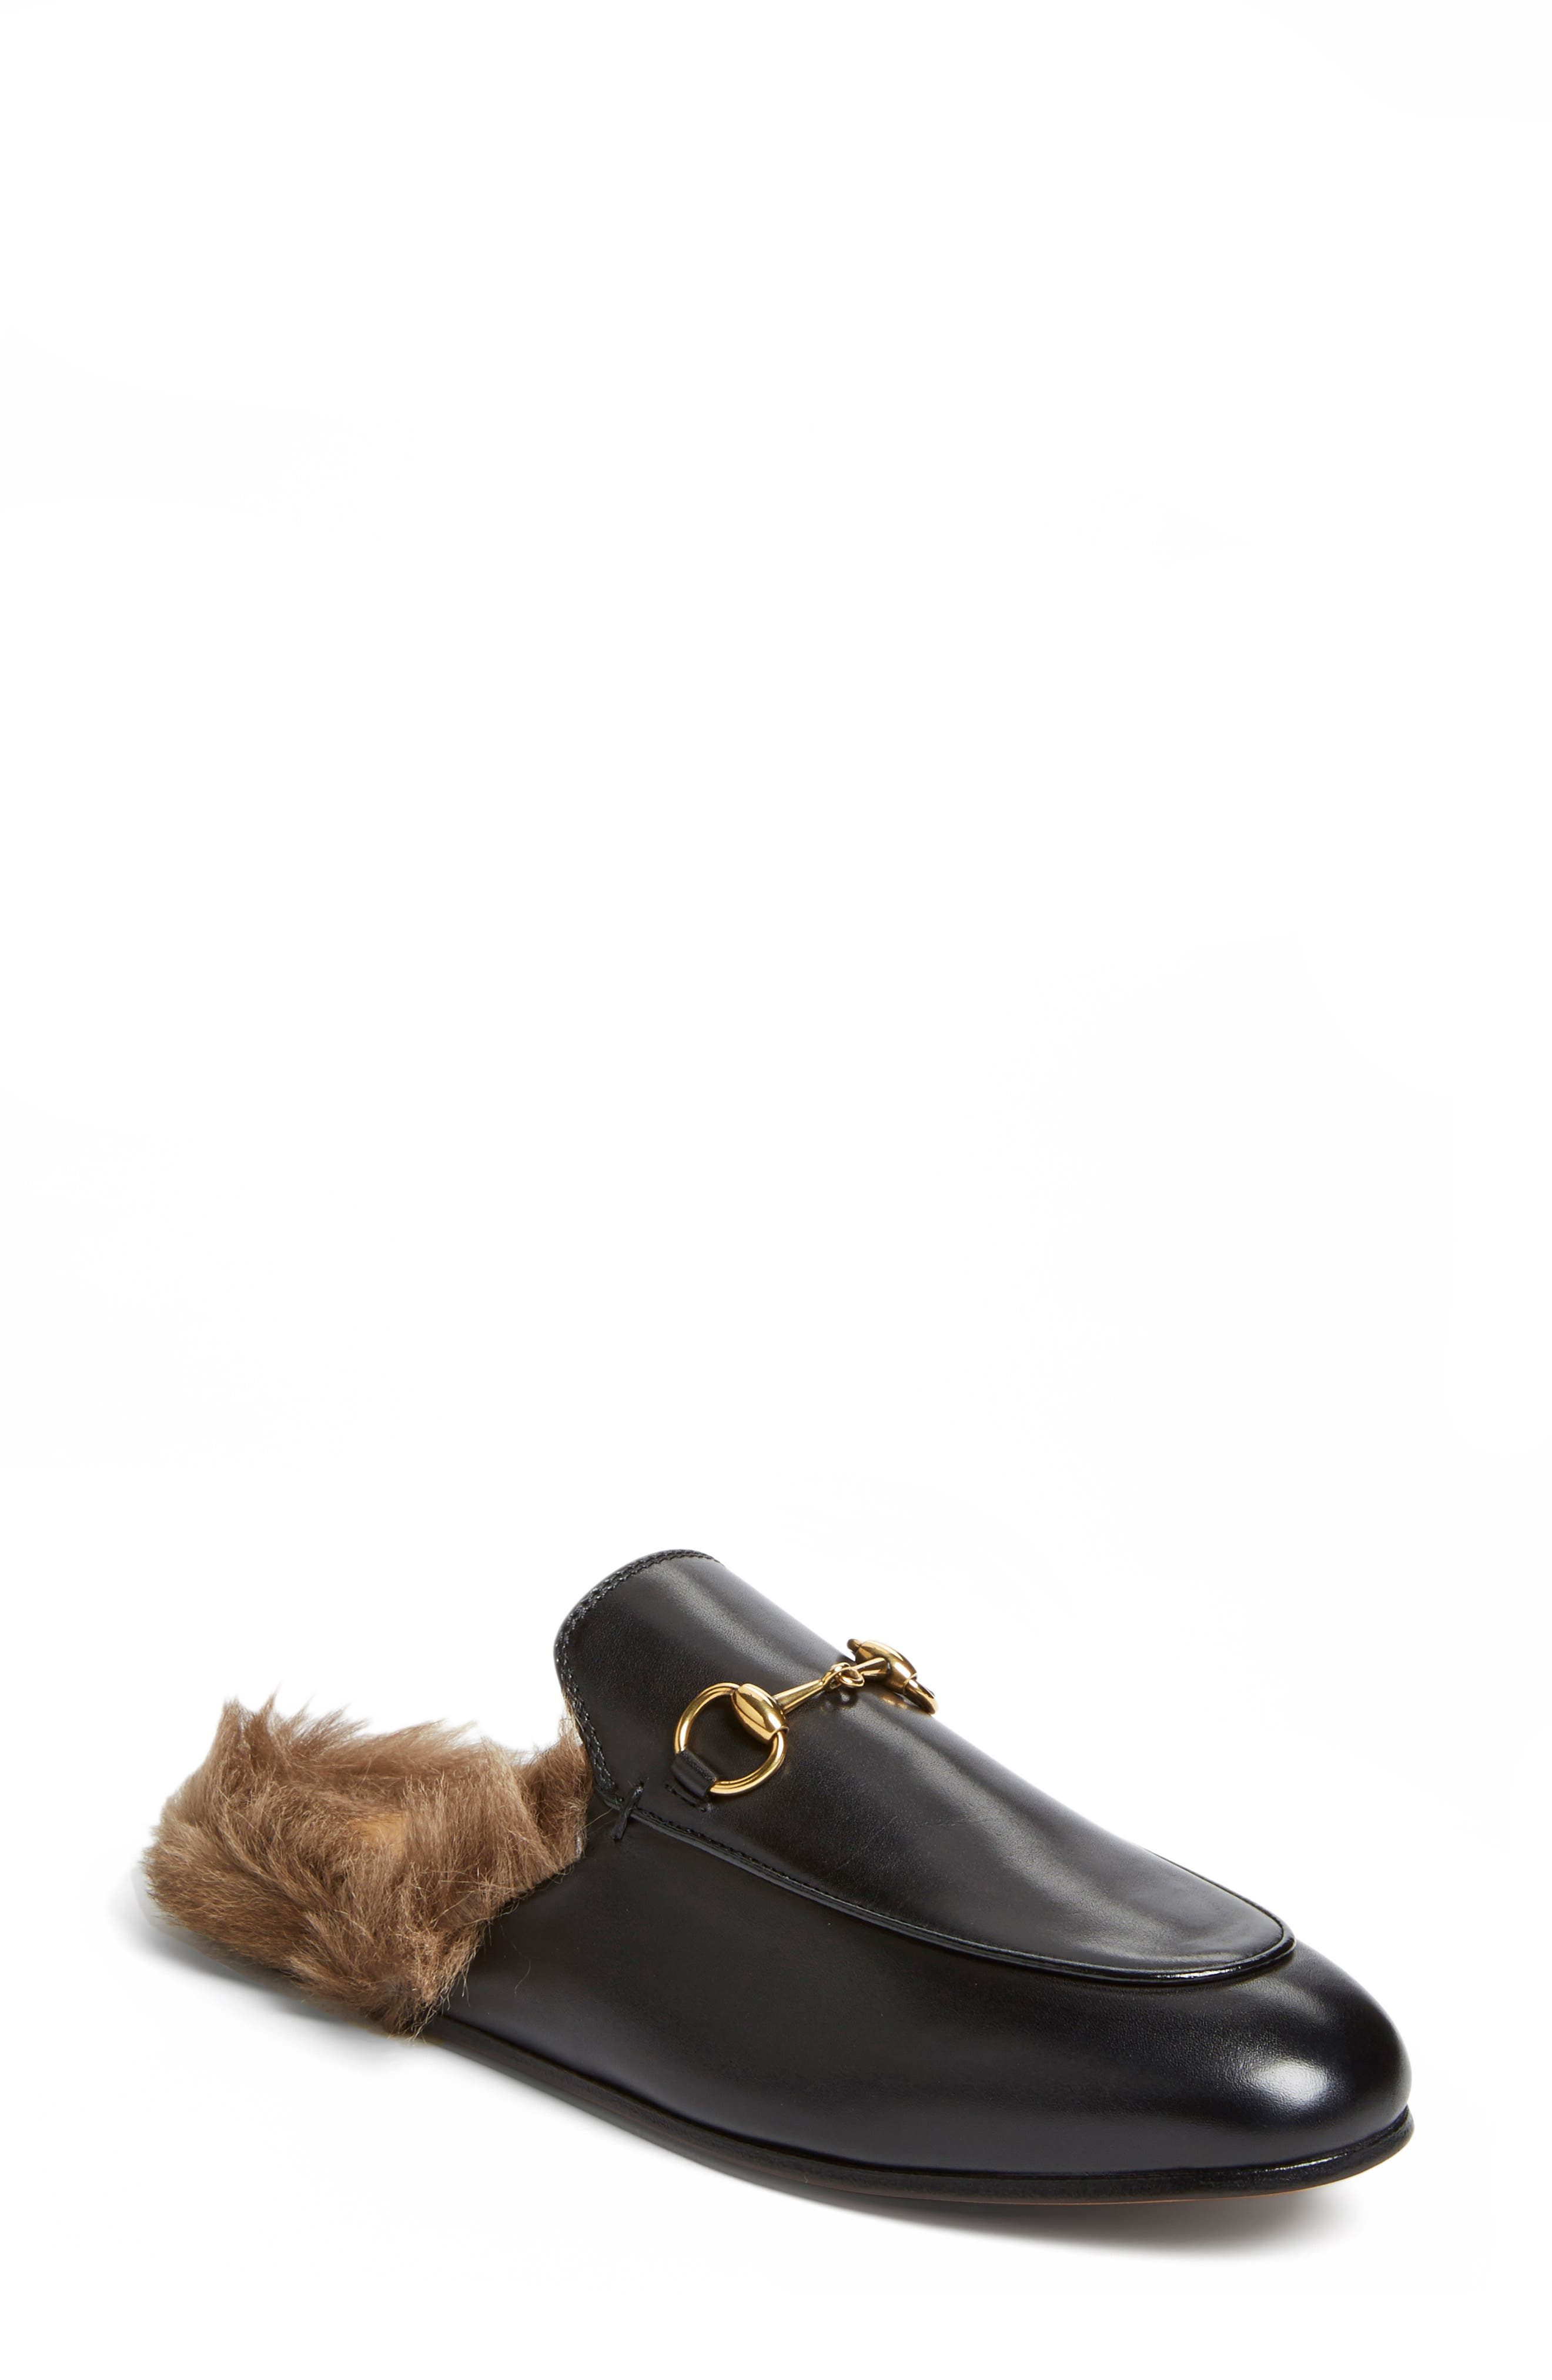 'Princetown' Genuine Shearling Loafer Mule,                             Main thumbnail 1, color,                             BLACK